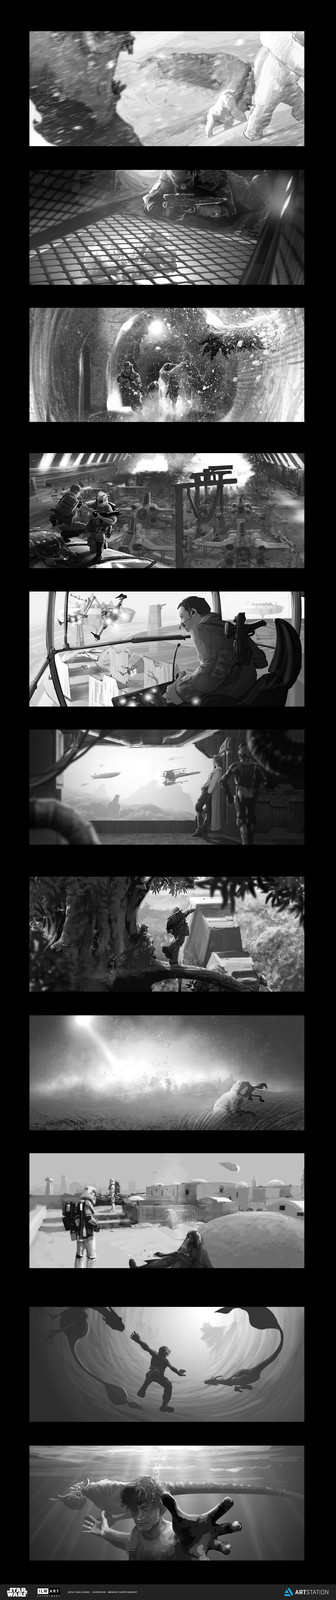 Thumbnail Sketches for the Moment Challenge